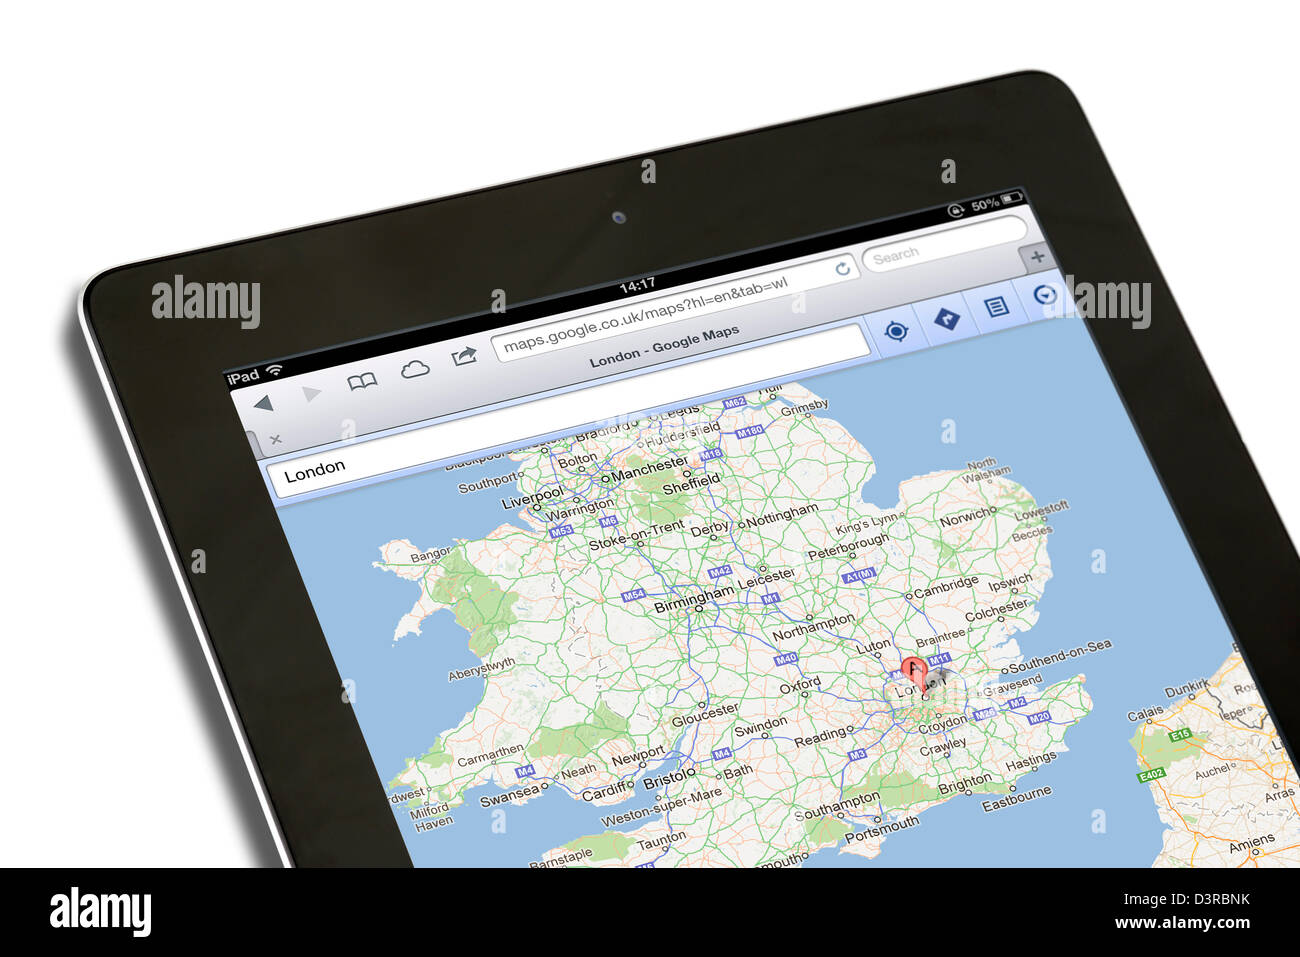 Using Maps on Google.co.uk viewed on a 4th generation iPad - Stock Image